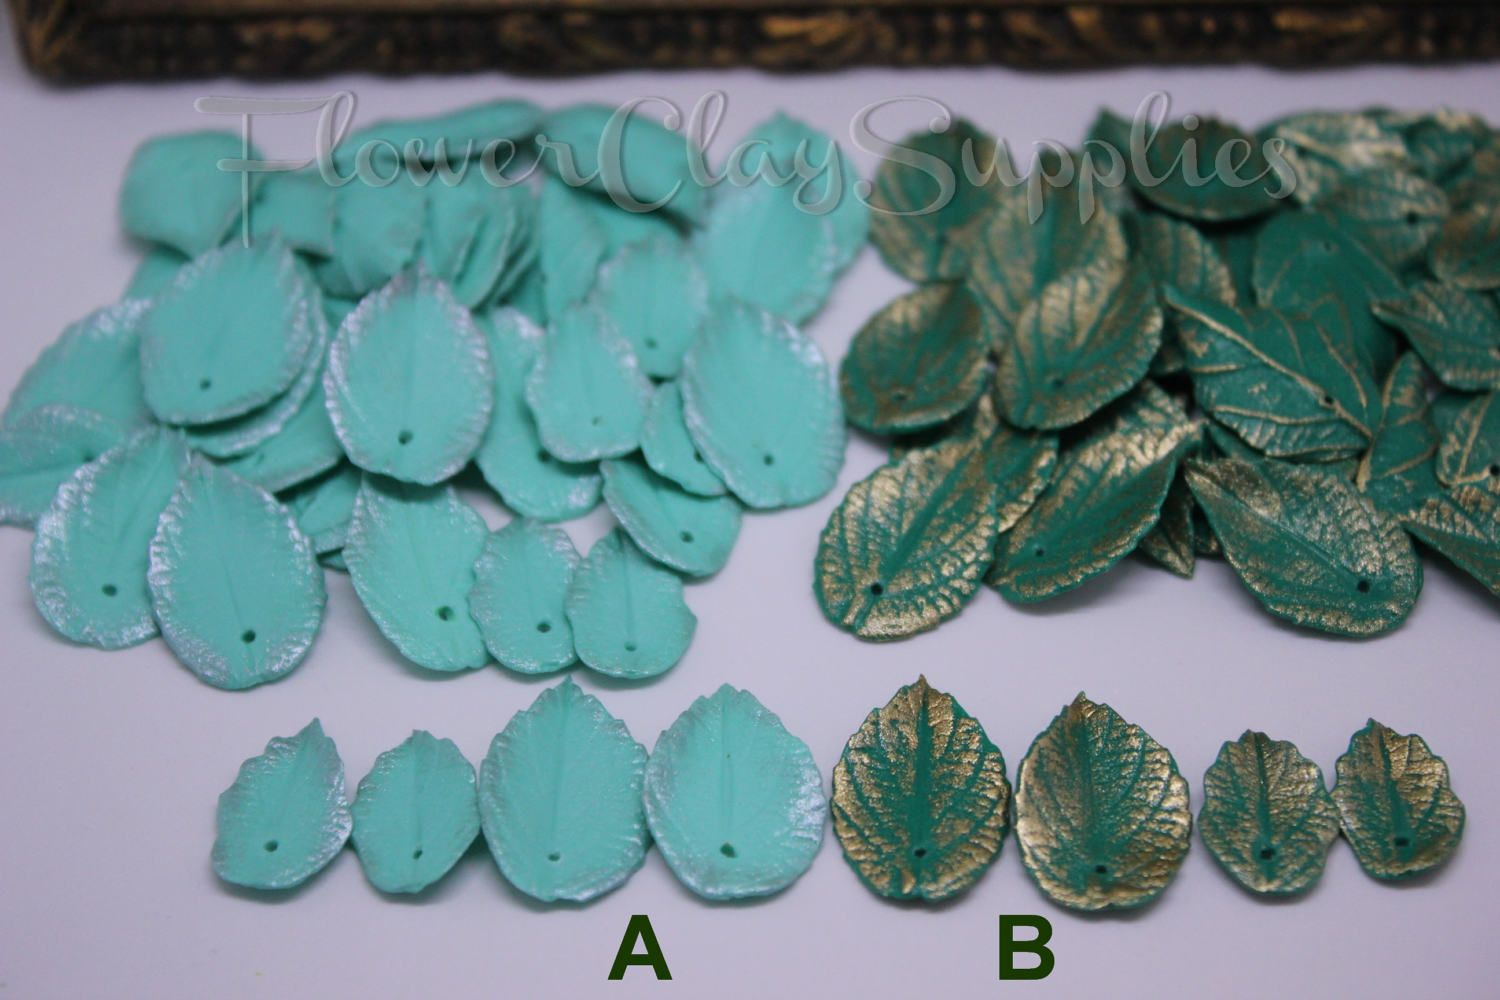 10 pcs Leaves. Double-sided Small and Big leaf beads.  Polymer clay Leaf bead - Jewelry making  - leaf beads - plant beads. di FlowerClaySupplies su Etsy